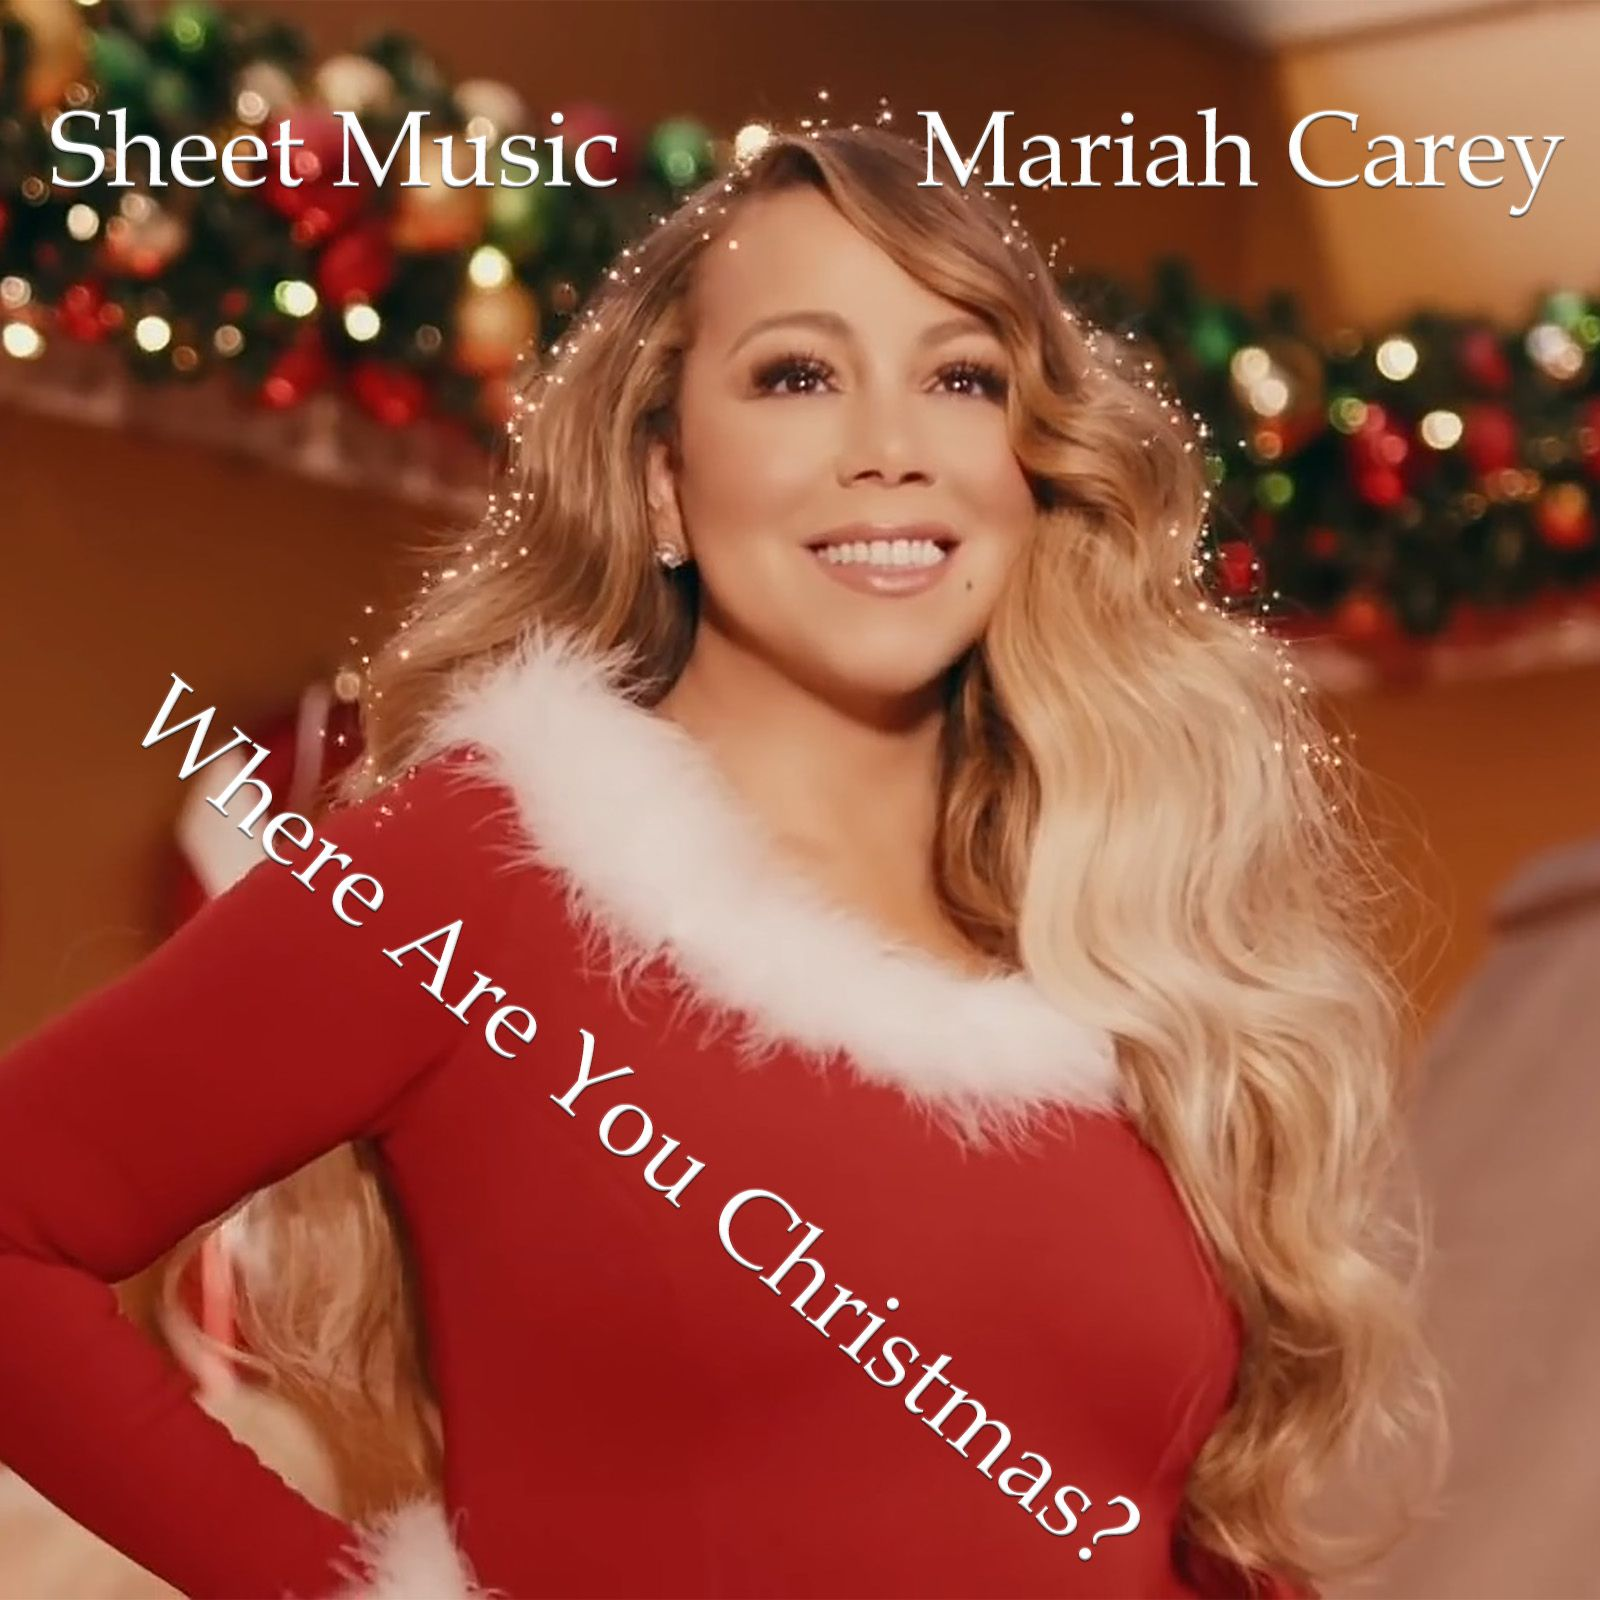 Where Are You Christmas By Mariah Carey James Horner And Will Jennings Mariah Carey Mariah Carey